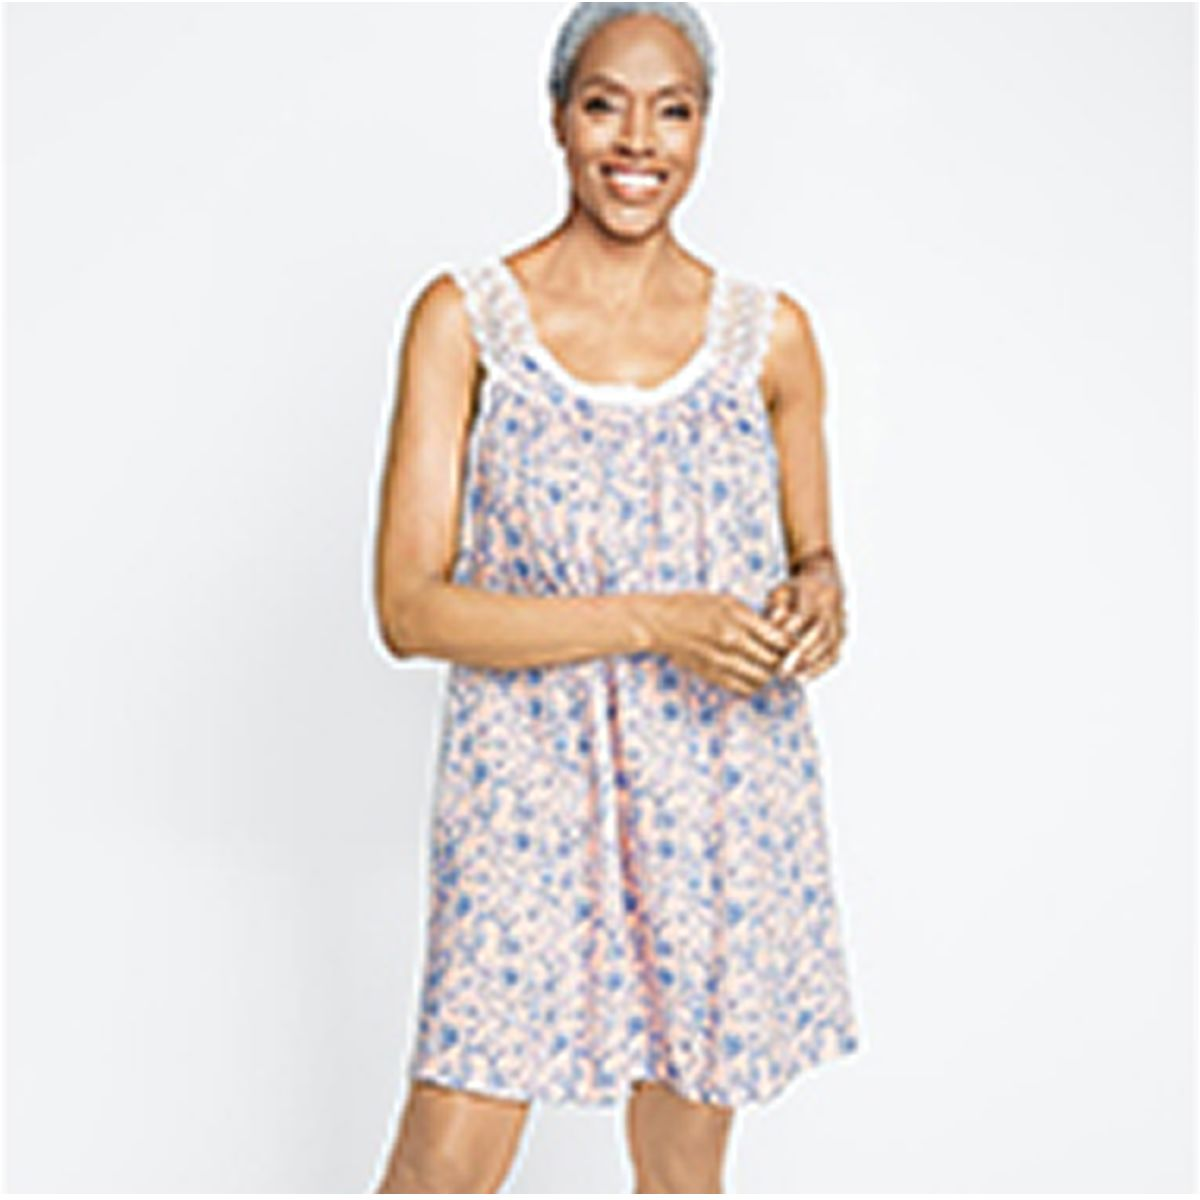 59c79b8100 Nightgowns and Sleep Shirts - Macy's